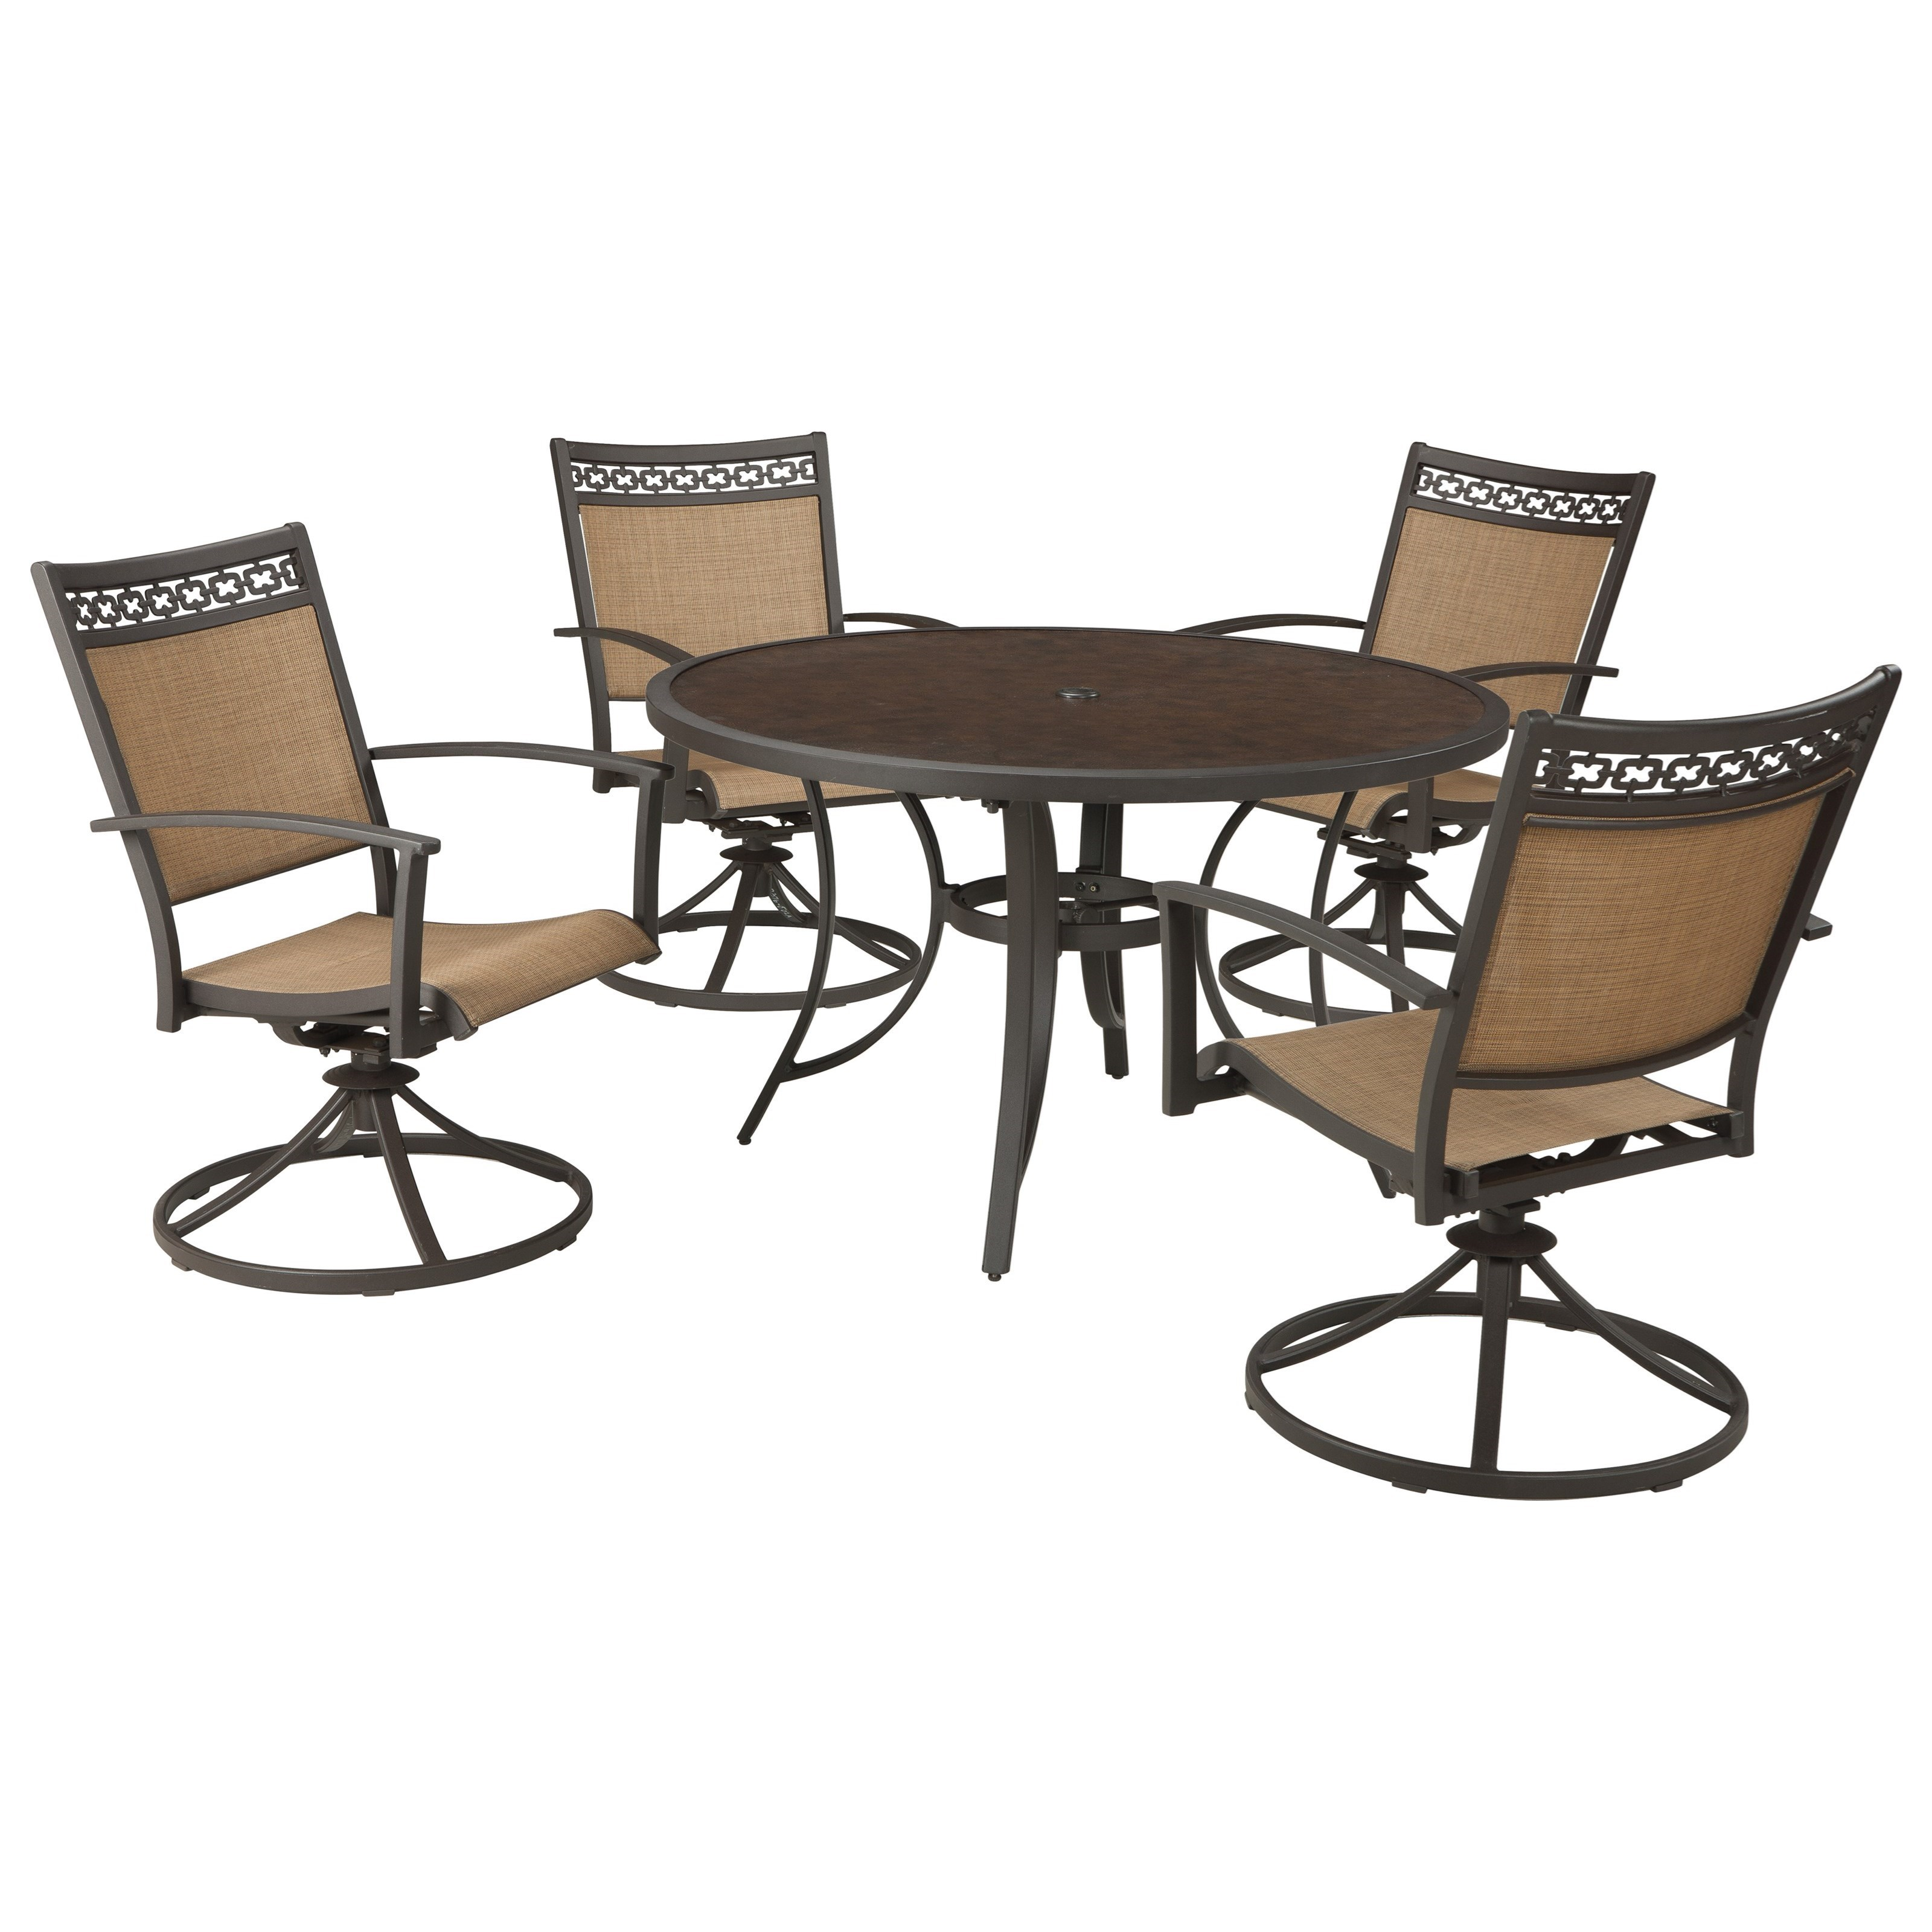 Signature Design by Ashley Carmadelia Outdoor Round Dining  : products2Fsignaturedesignbyashley2Fcolor2Fcarmadeliap376 6152B2x602a b1 from www.wayside-furniture.com size 3200 x 3200 jpeg 747kB